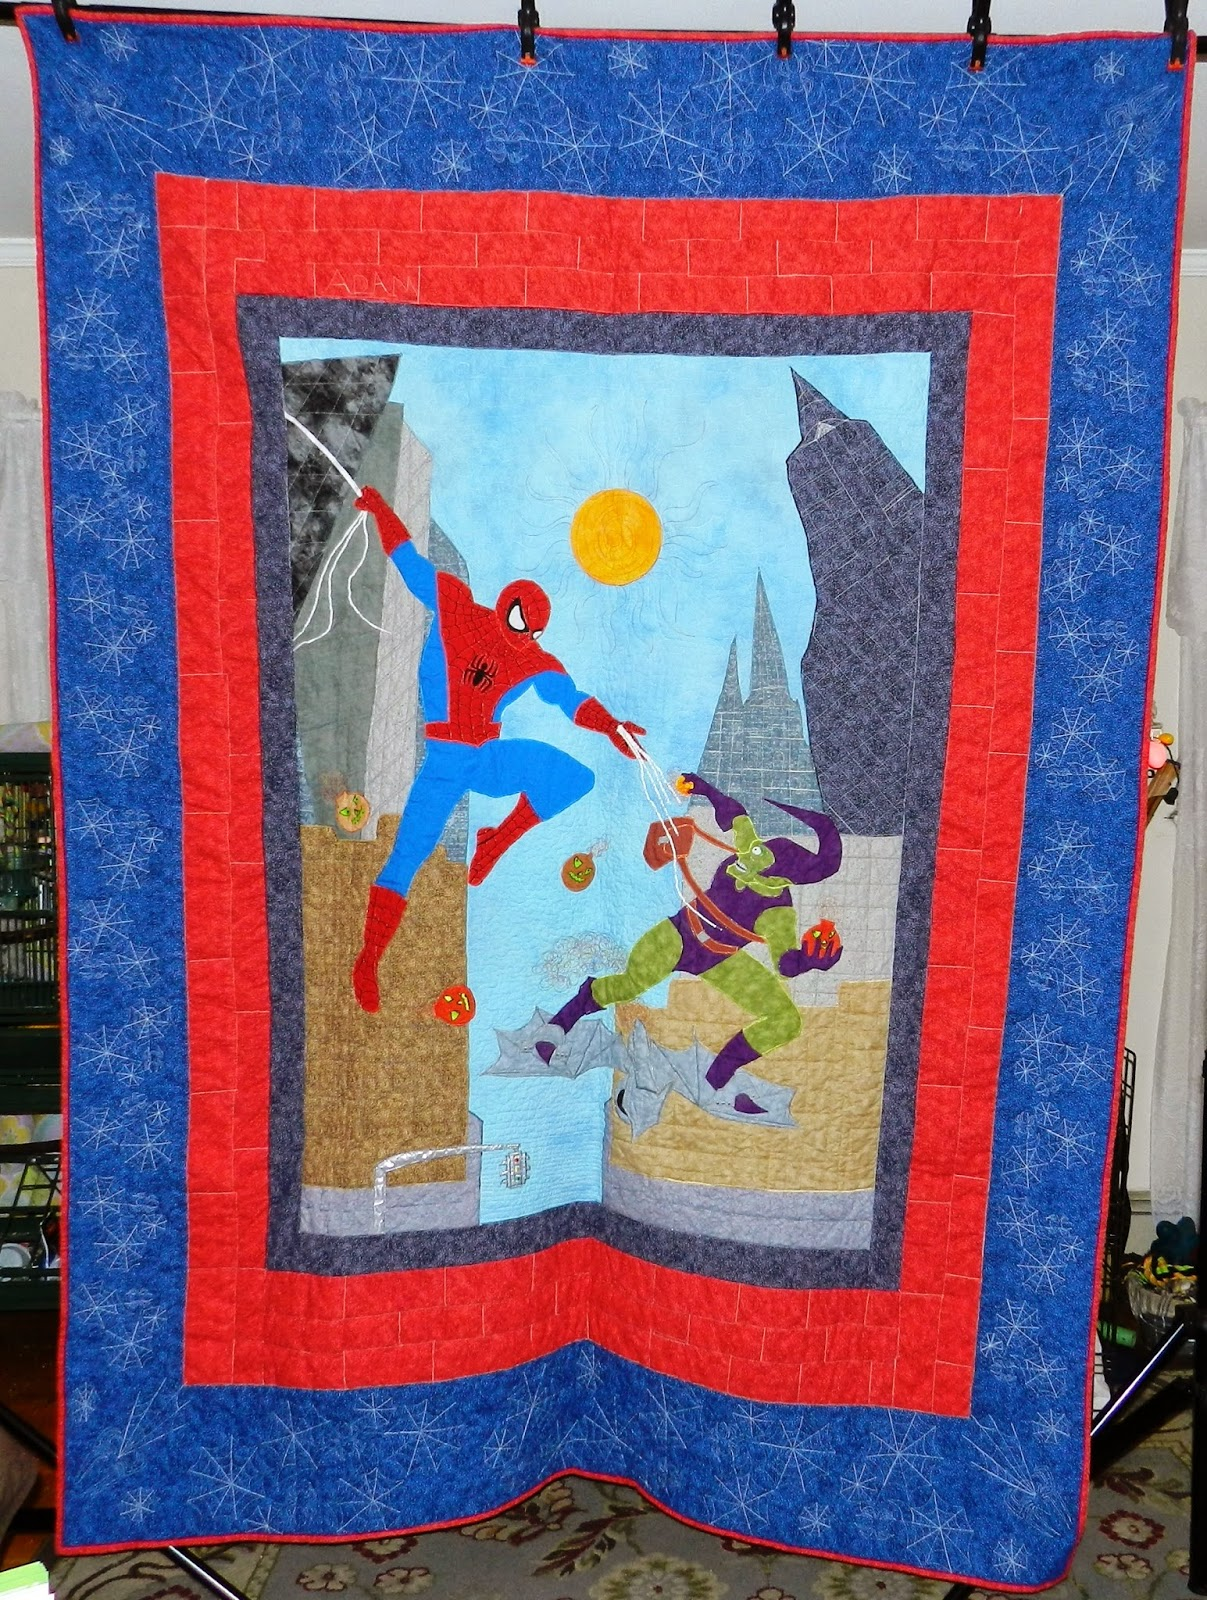 Dinah's Quilts and Embroidery: Spider-Man Quilt : spiderman quilt - Adamdwight.com